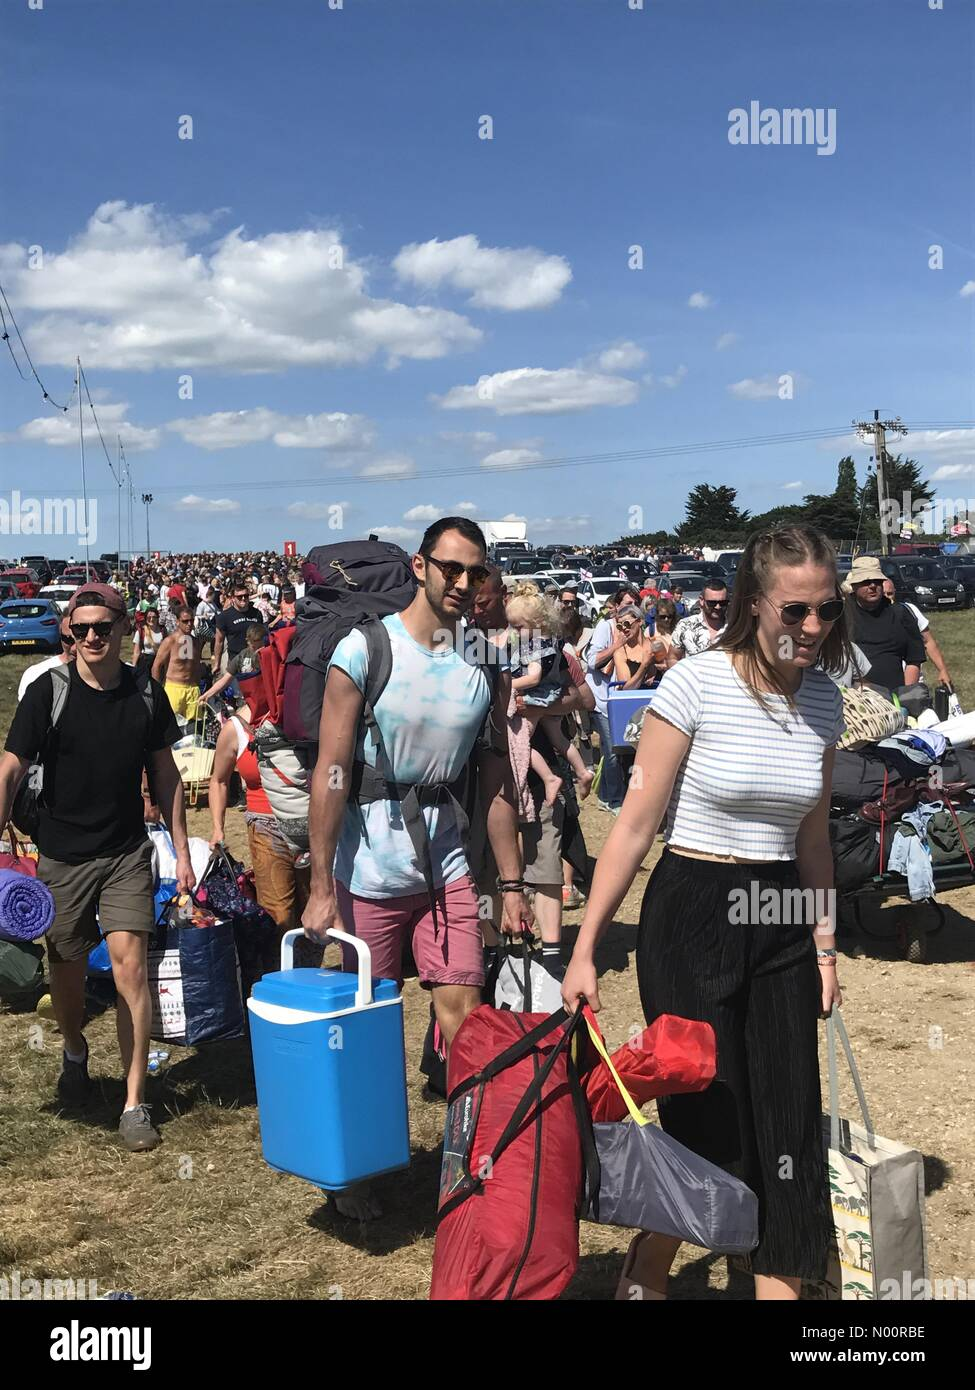 East Cowes, Newport, UK. 21st June, 2018. Seaport Close, Newport, Isle of Wight. 21st Jun, 2018. Hundreds of festival-goers enter the Isle of Wight festival site after a long wait in the heat. Credit: amylaura/StockimoNews Credit: amylaura/StockimoNews/Alamy Live News - Stock Image